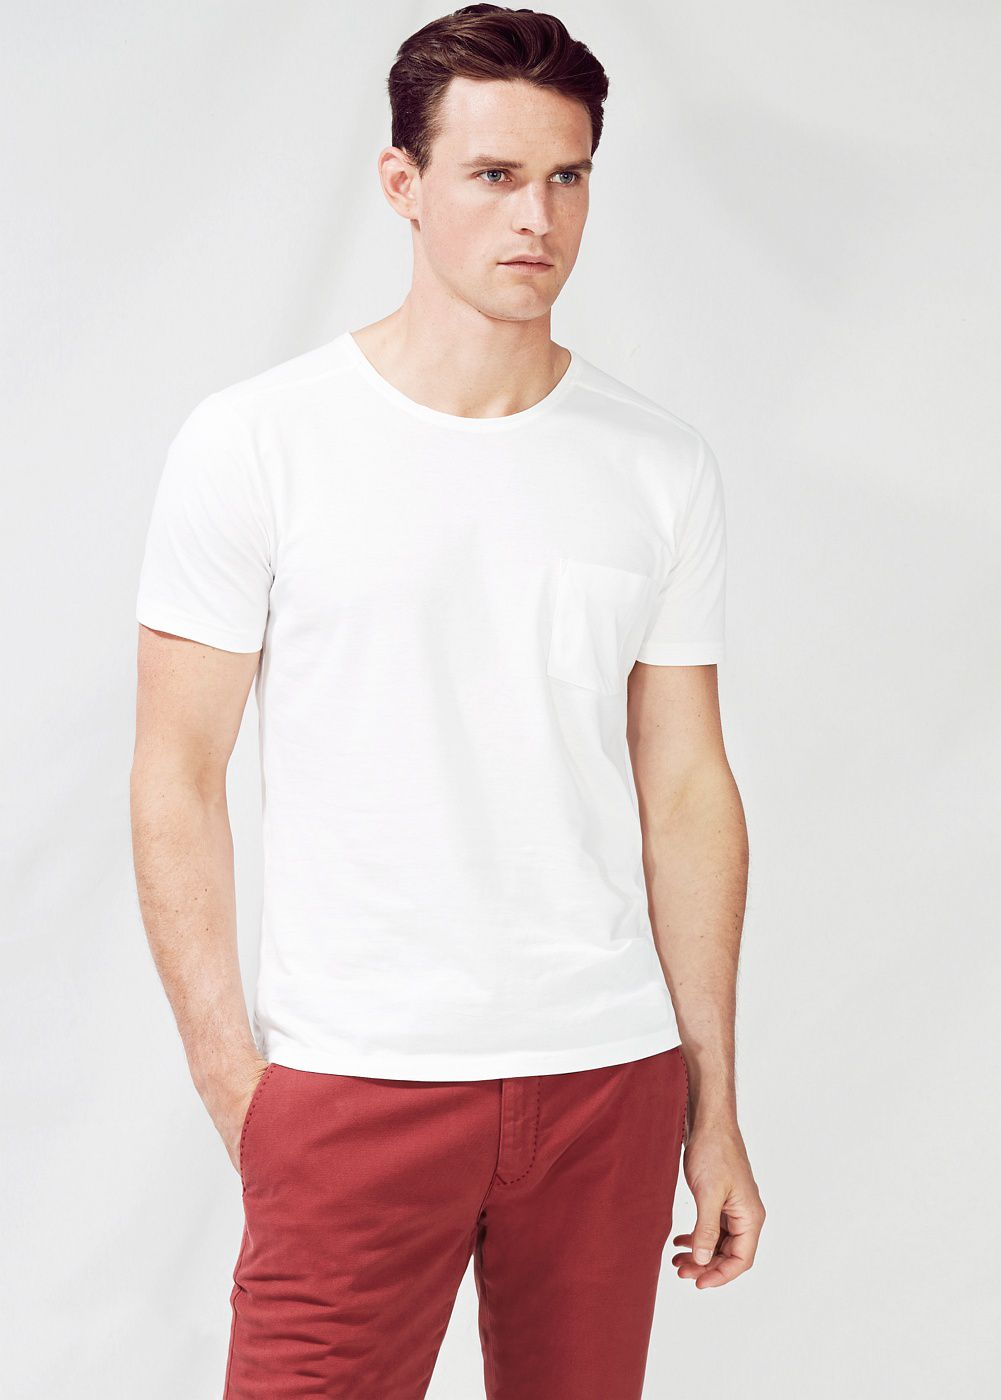 Chest-pocket t-shirt